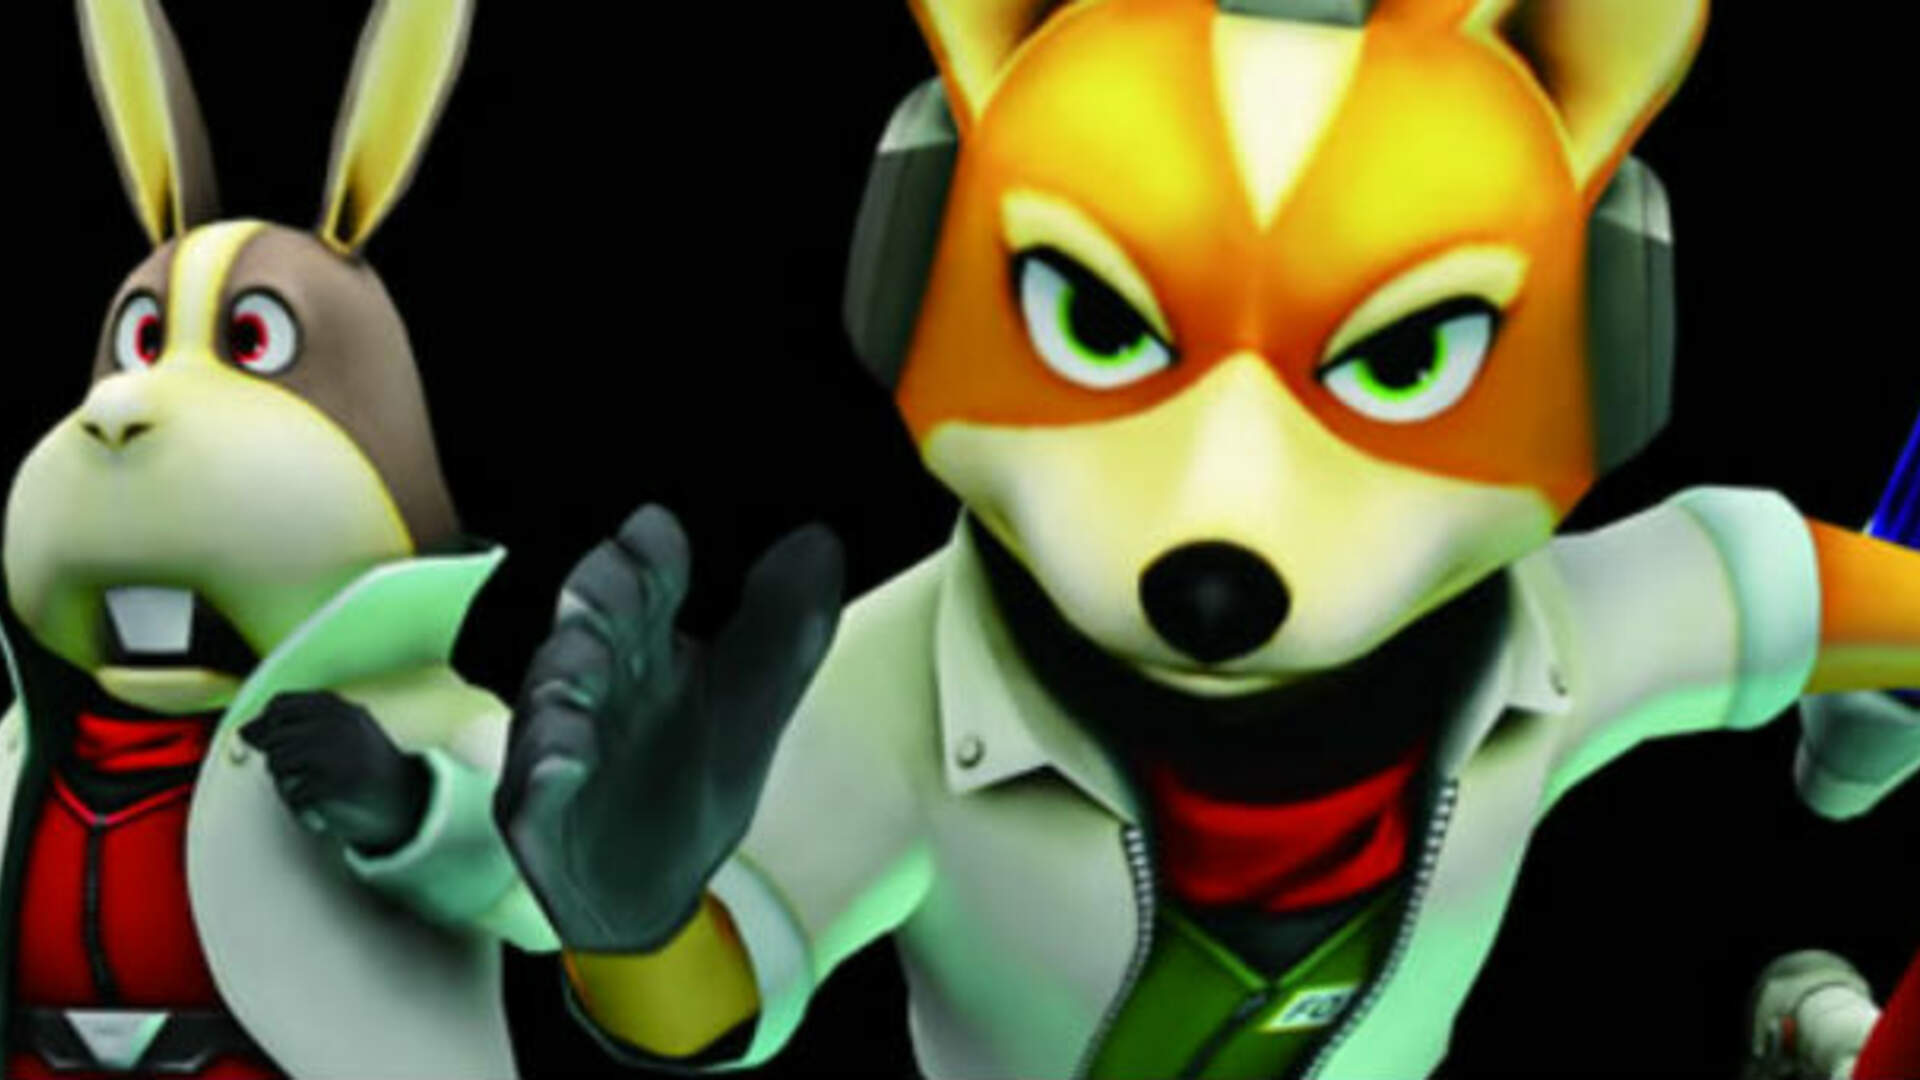 Retro Rumored to be Working on Star Fox Racing Game